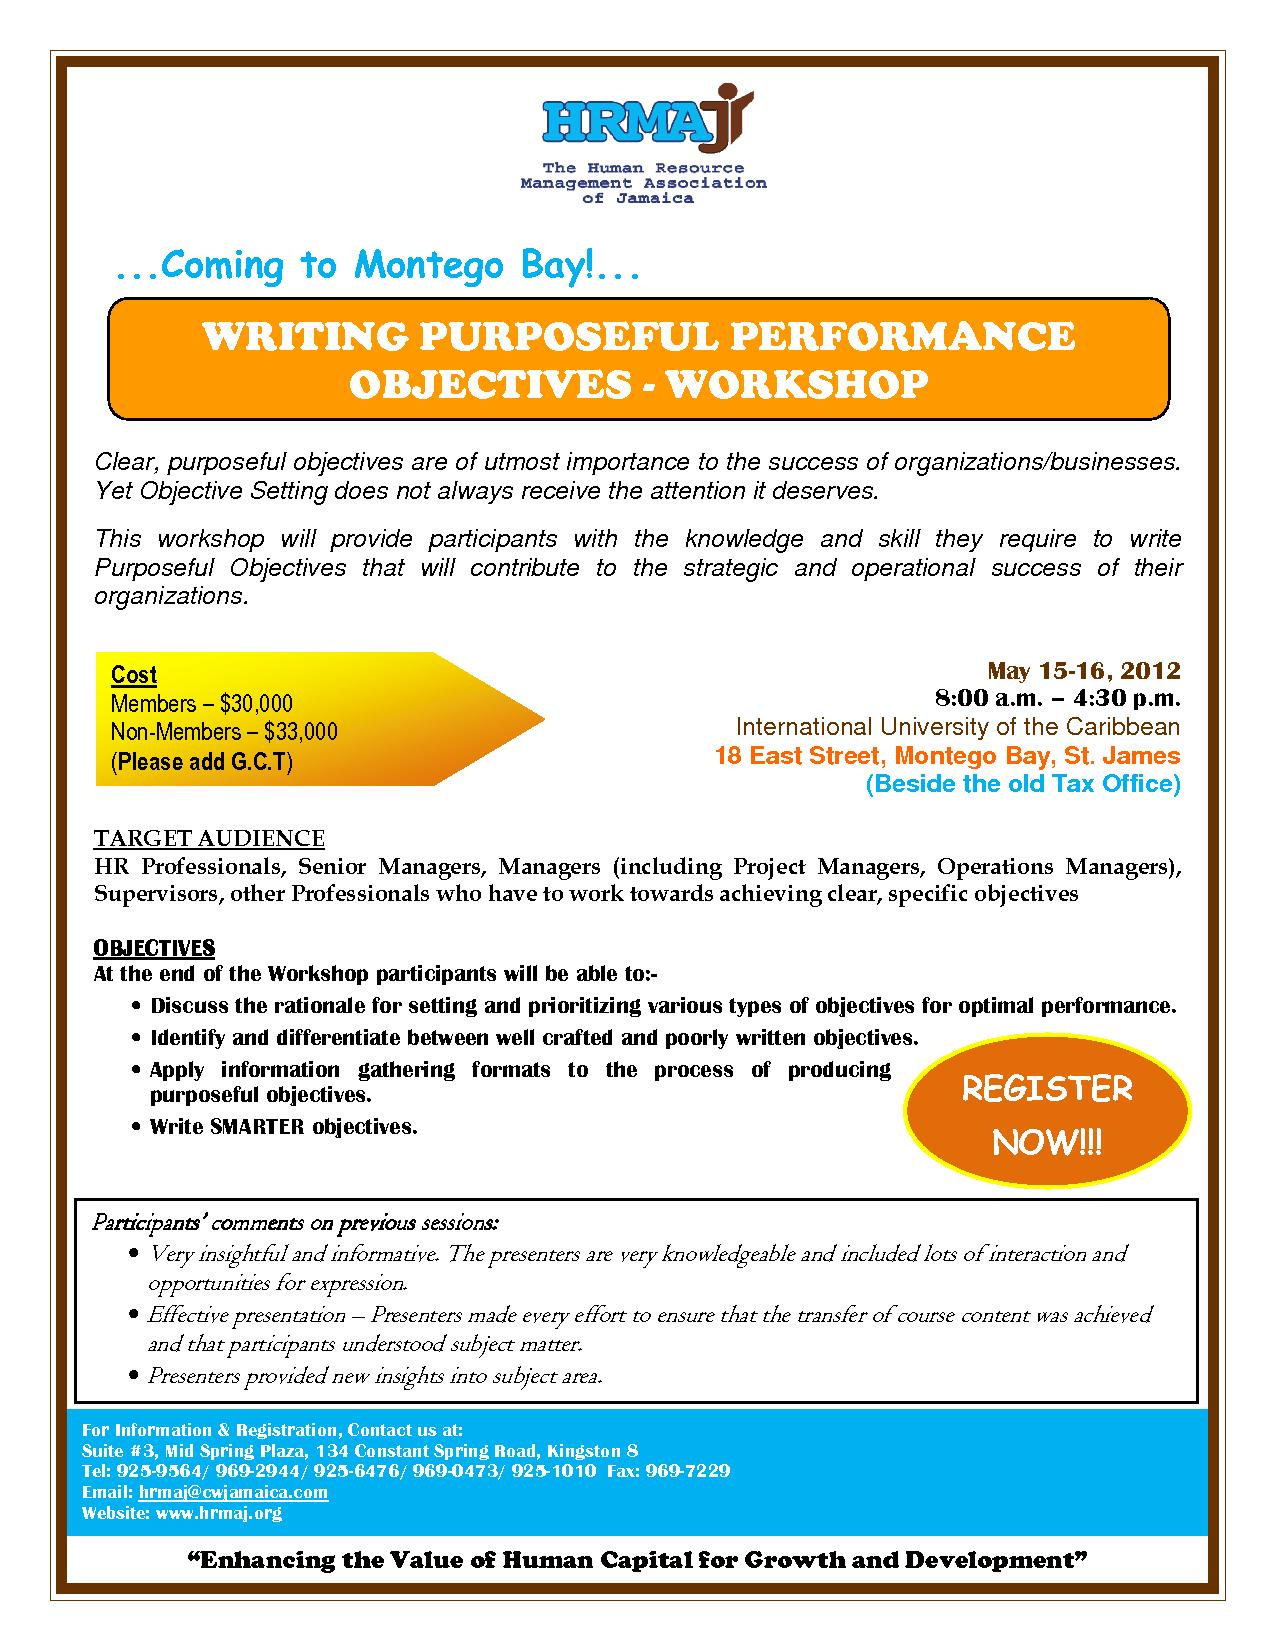 Writing Purposeful Performance Objectives Workshop